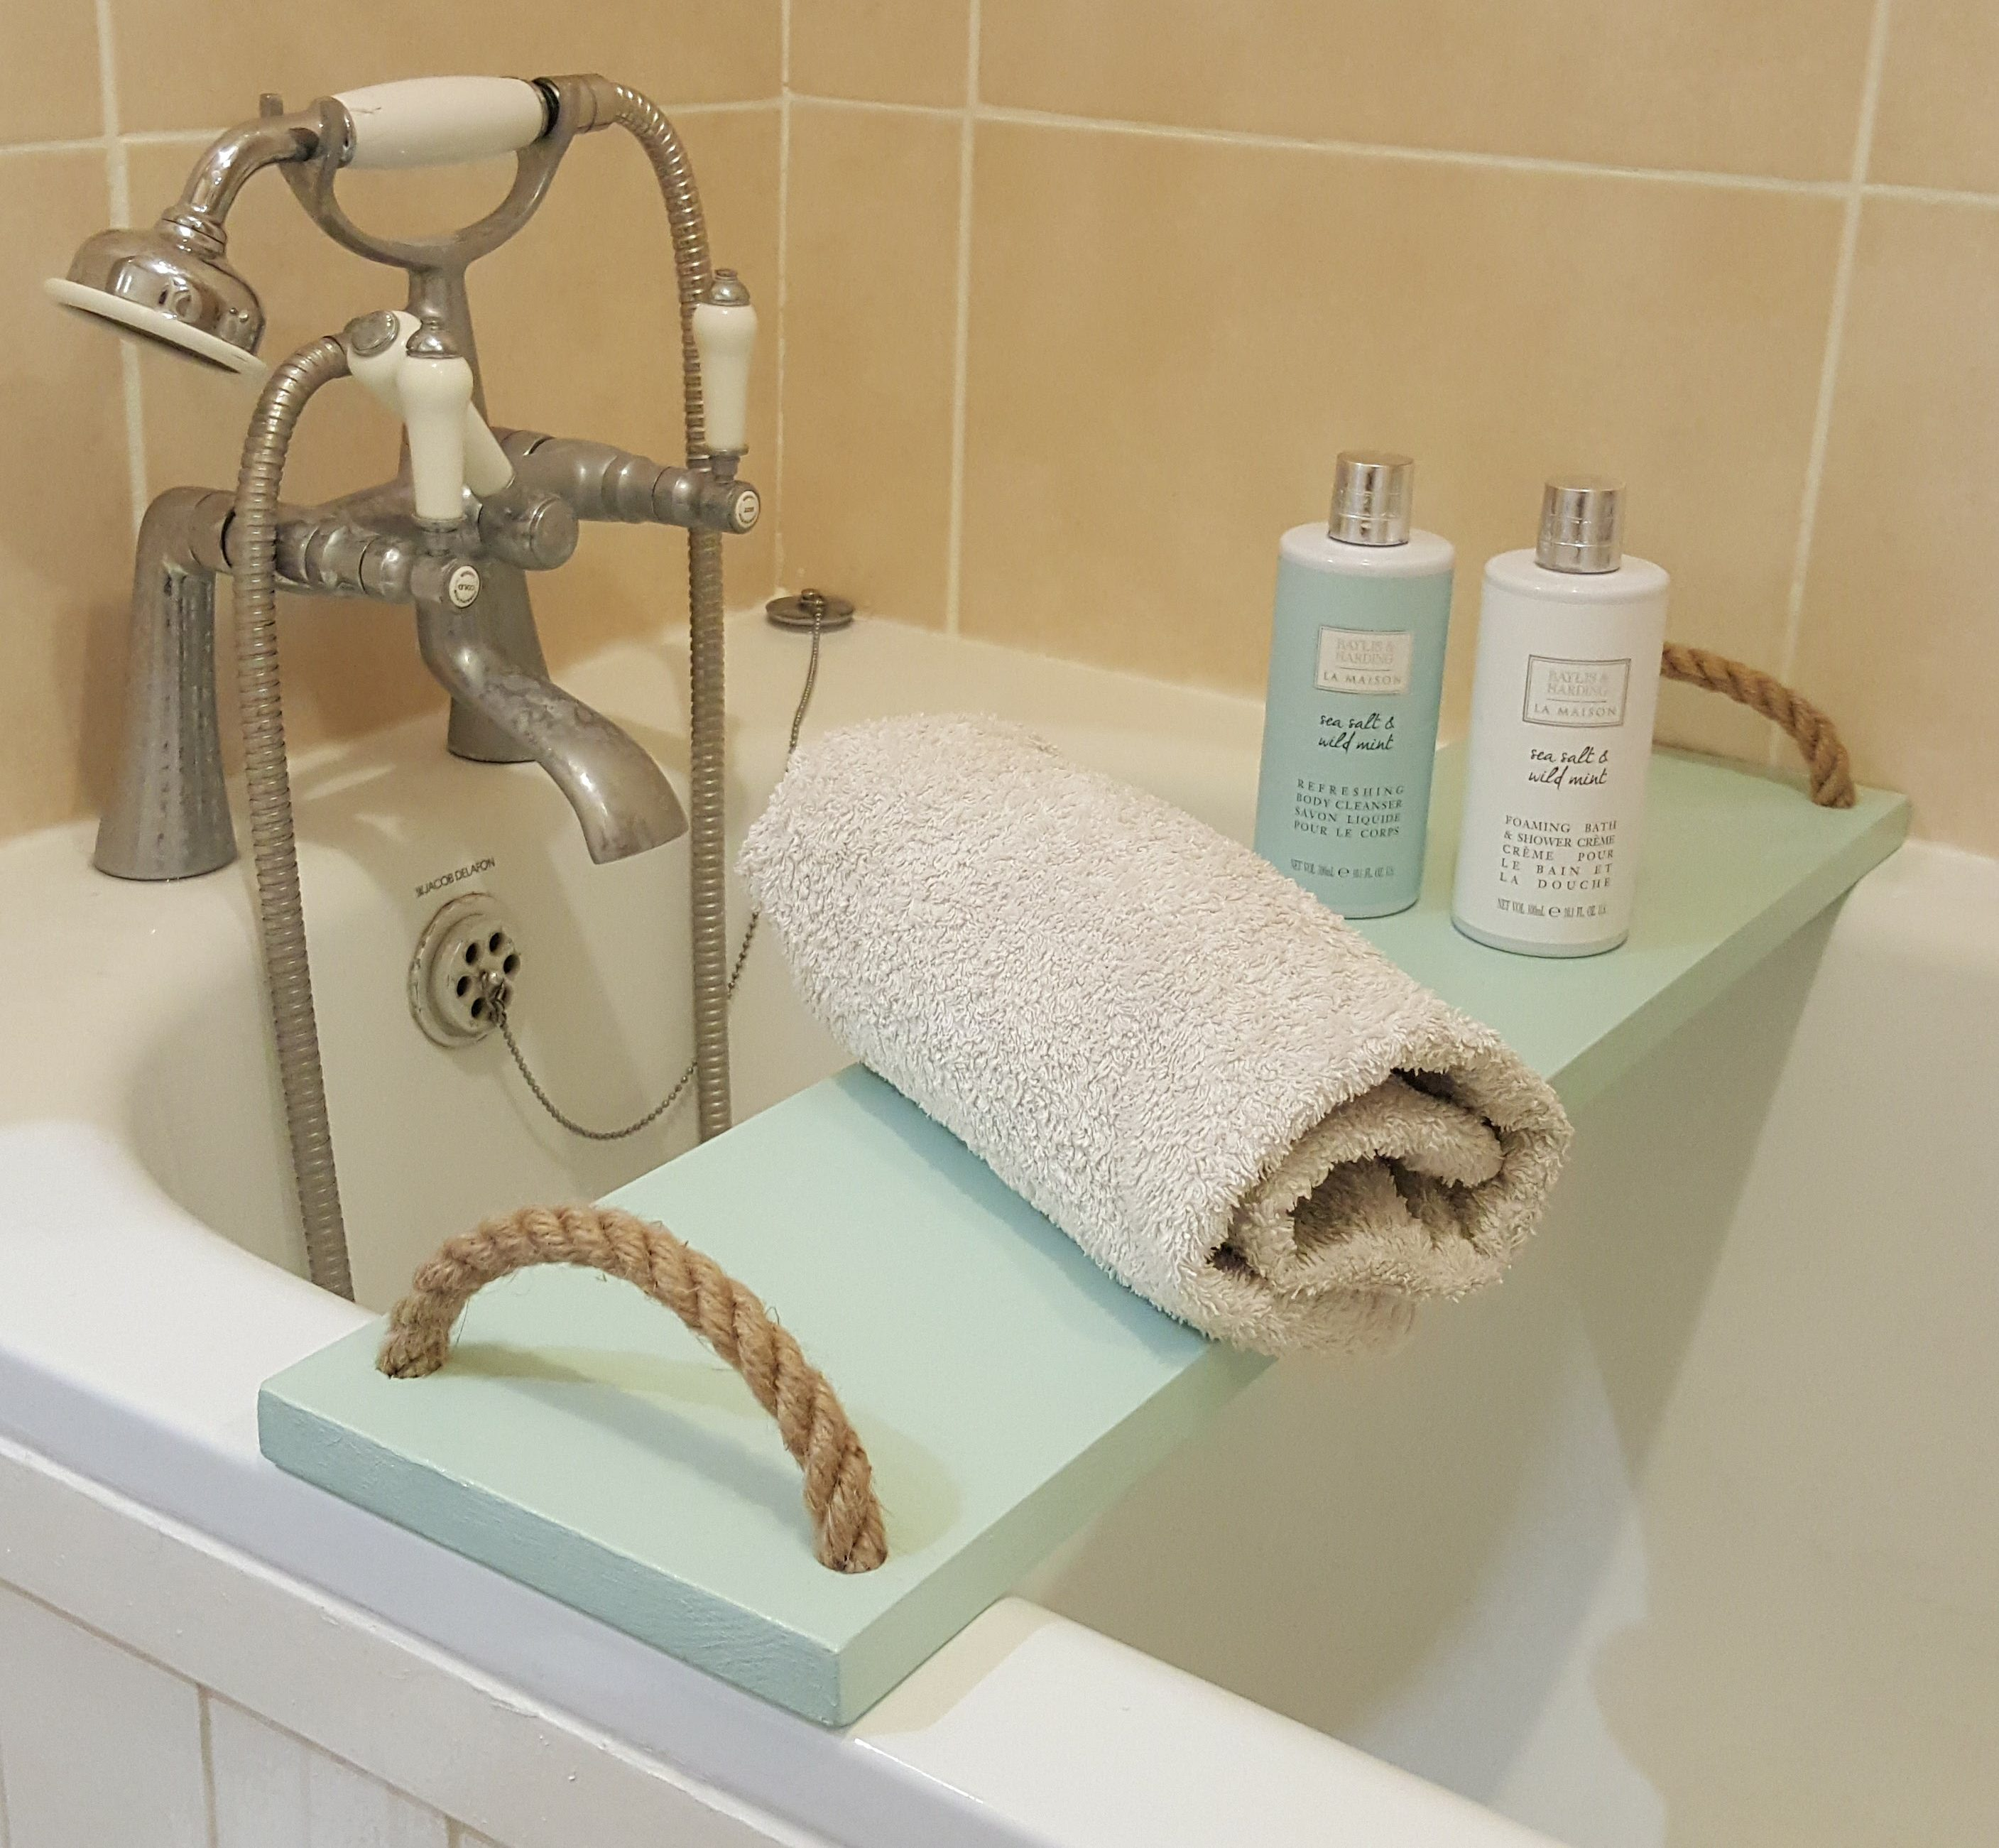 your daily the why shareitsaturday caddy this share tub bathtub for you it saturday bath starr need